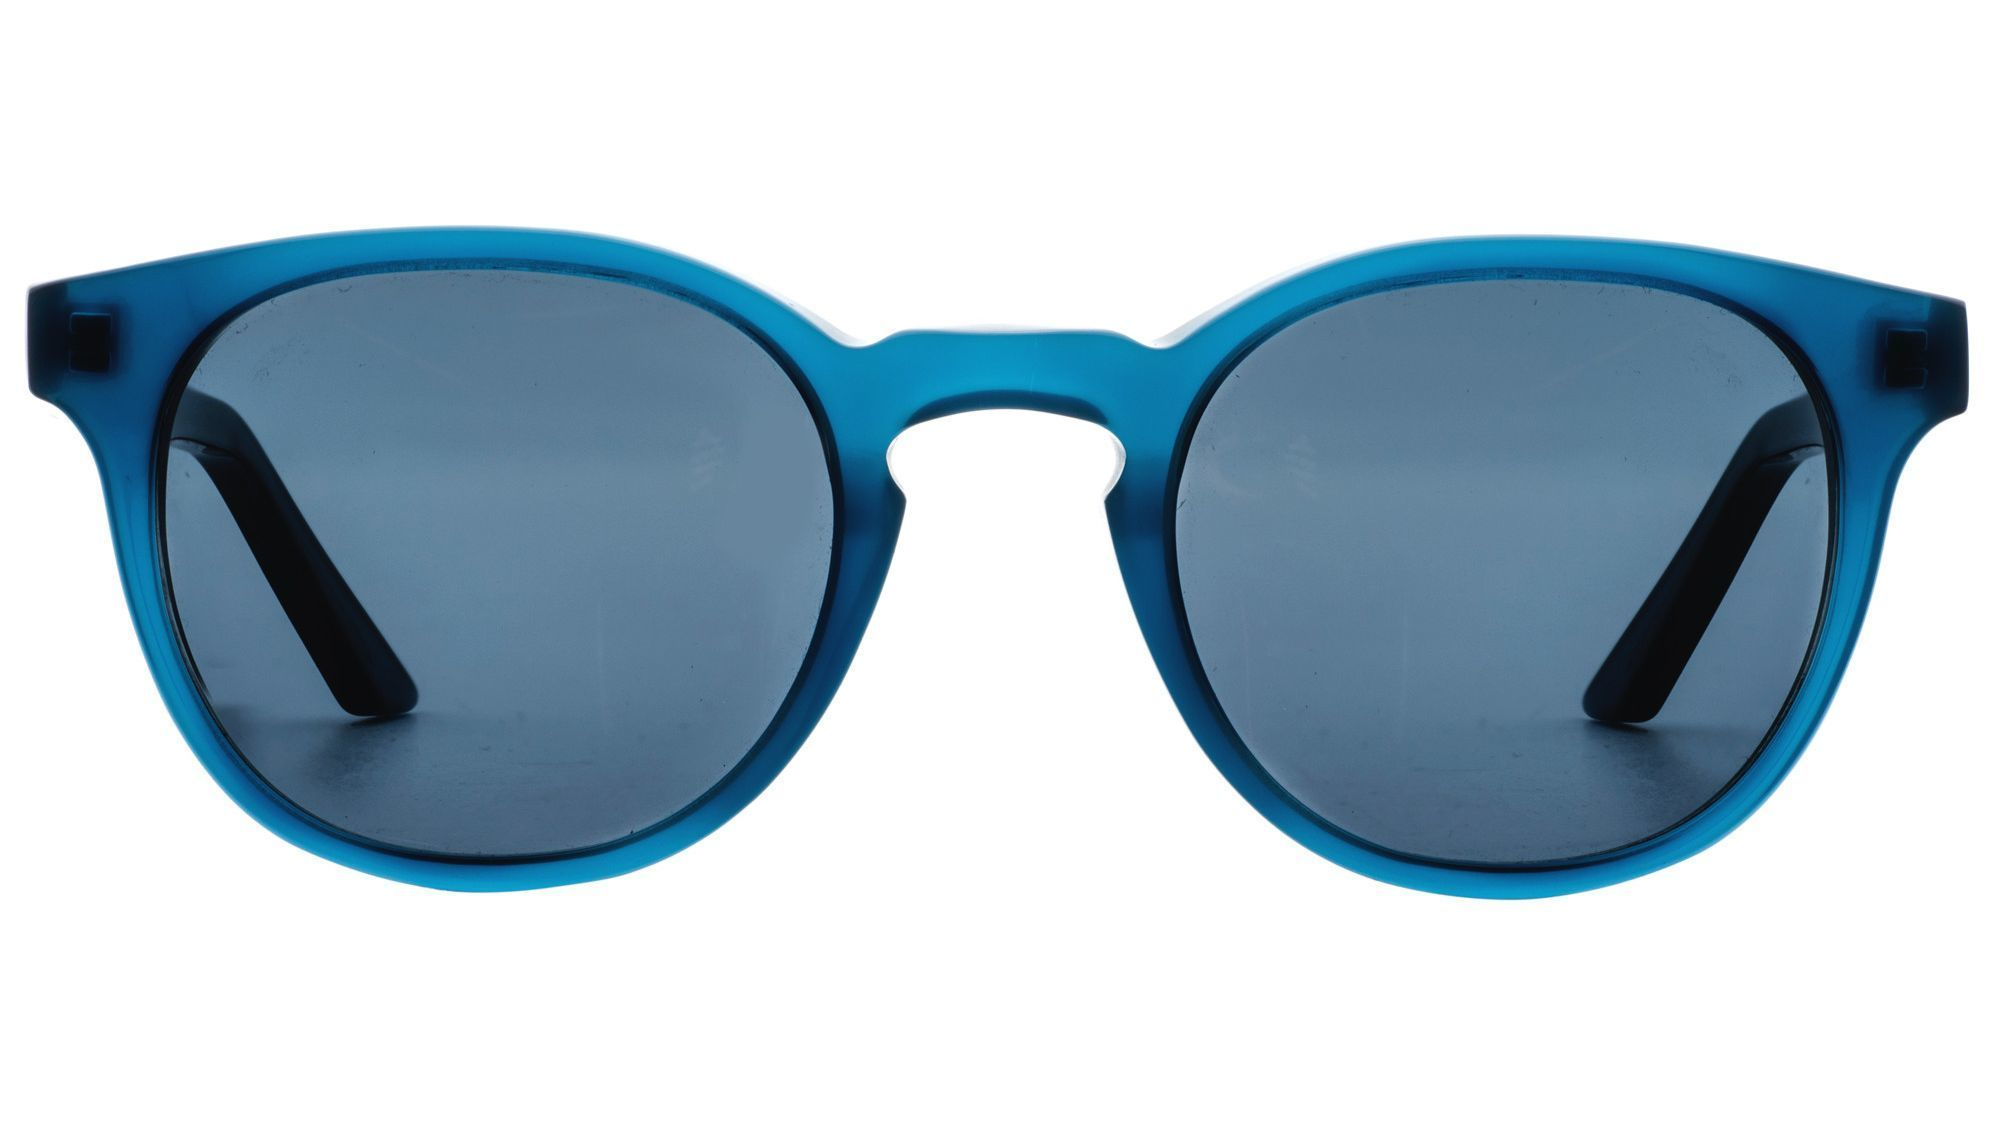 The limited-edition Marlton shades from American Trench X Lowercase NYC.